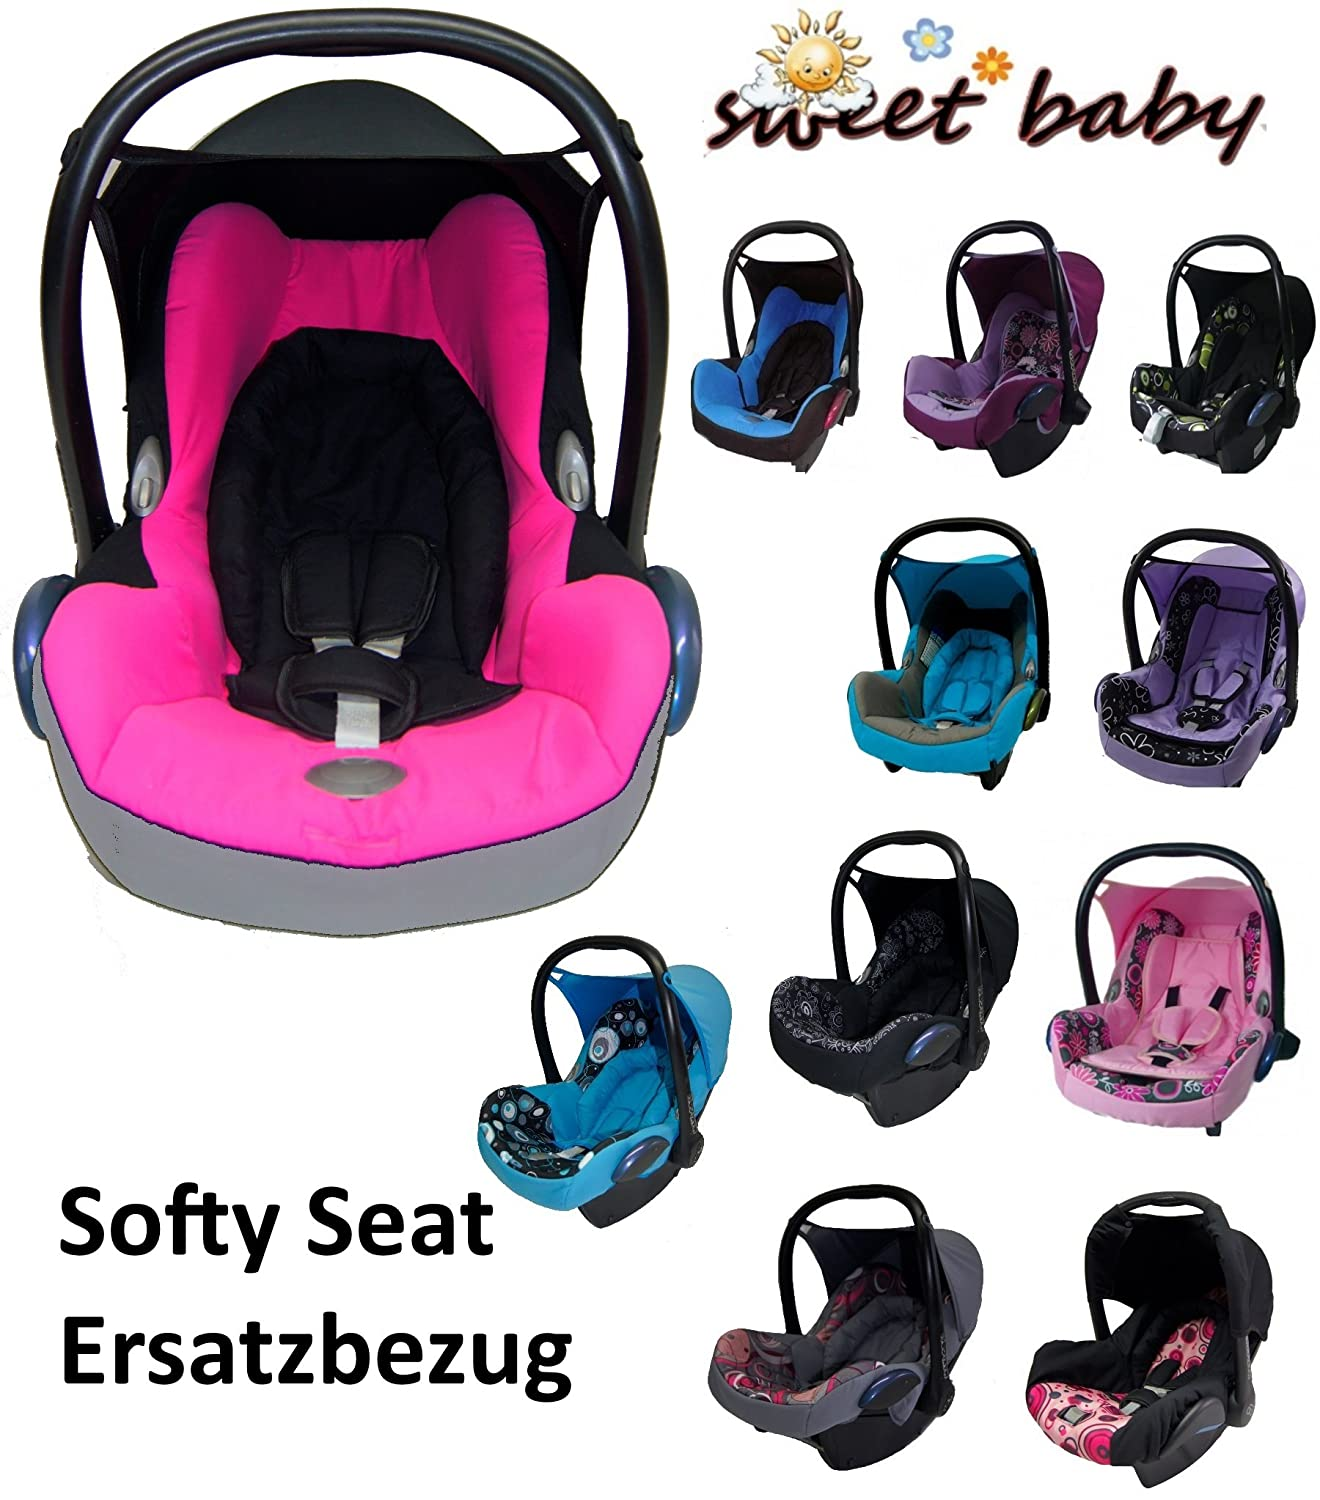 Grey//Pink * Softy Protect Cabriofix Cosy Soft and Thick Padded Replacement Cover for Maxi Cosi Cabriofix CAR SEAT Sweet Baby